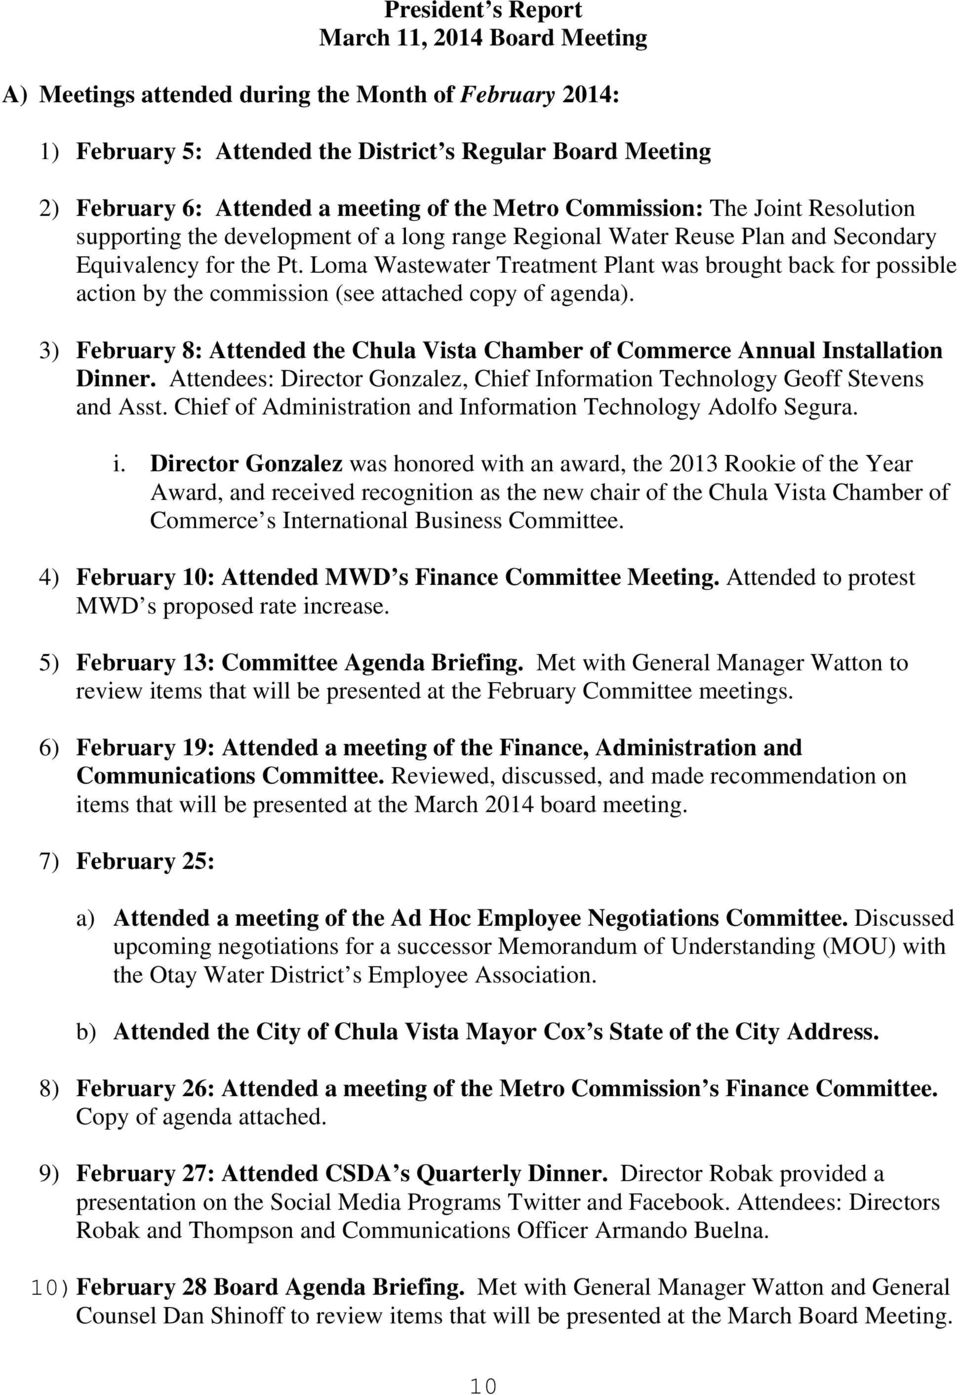 Loma Wastewater Treatment Plant was brought back for possible action by the commission (see attached copy of agenda).